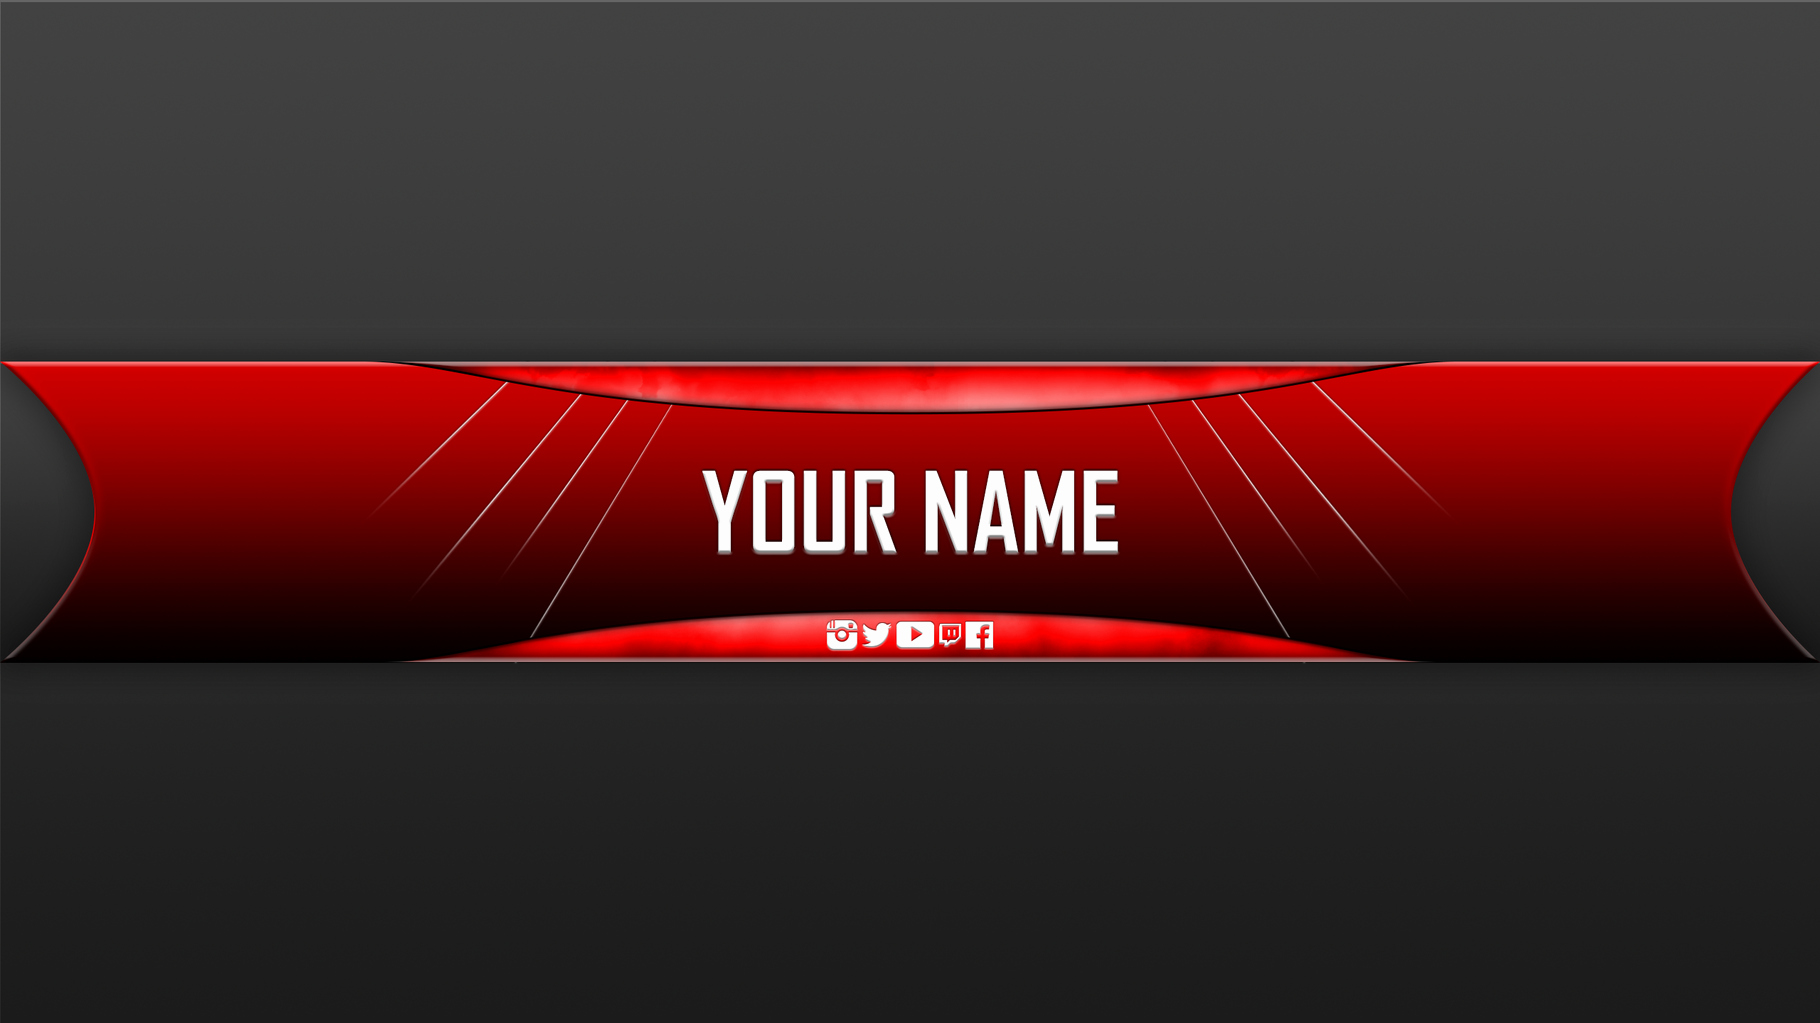 Free Youtube Banner Templates Unique Free Youtube Banner